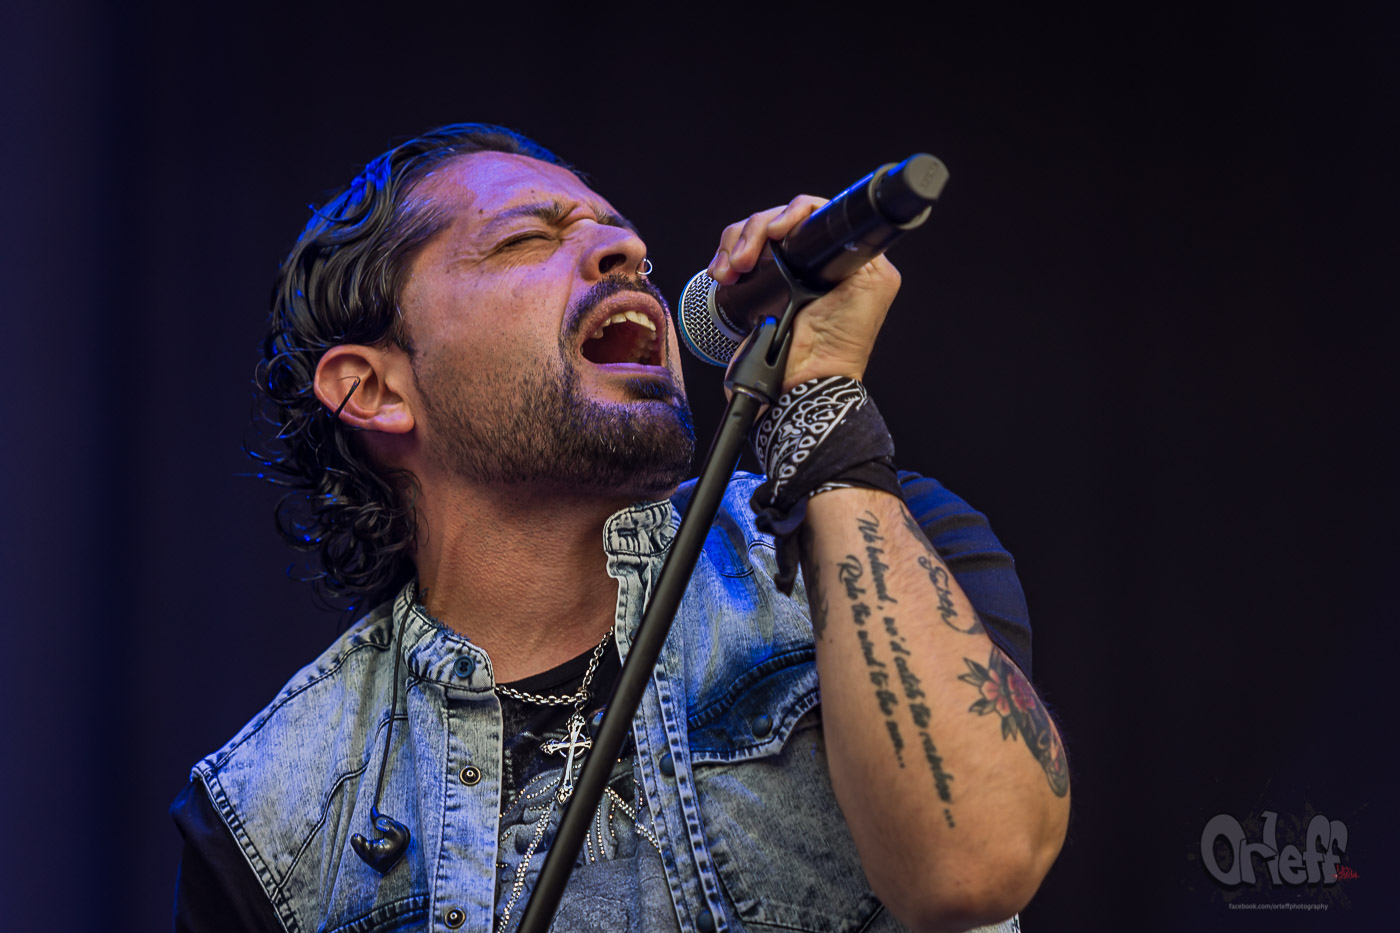 Ronnie Romero & Eridan @ Hills Of Rock, 2019